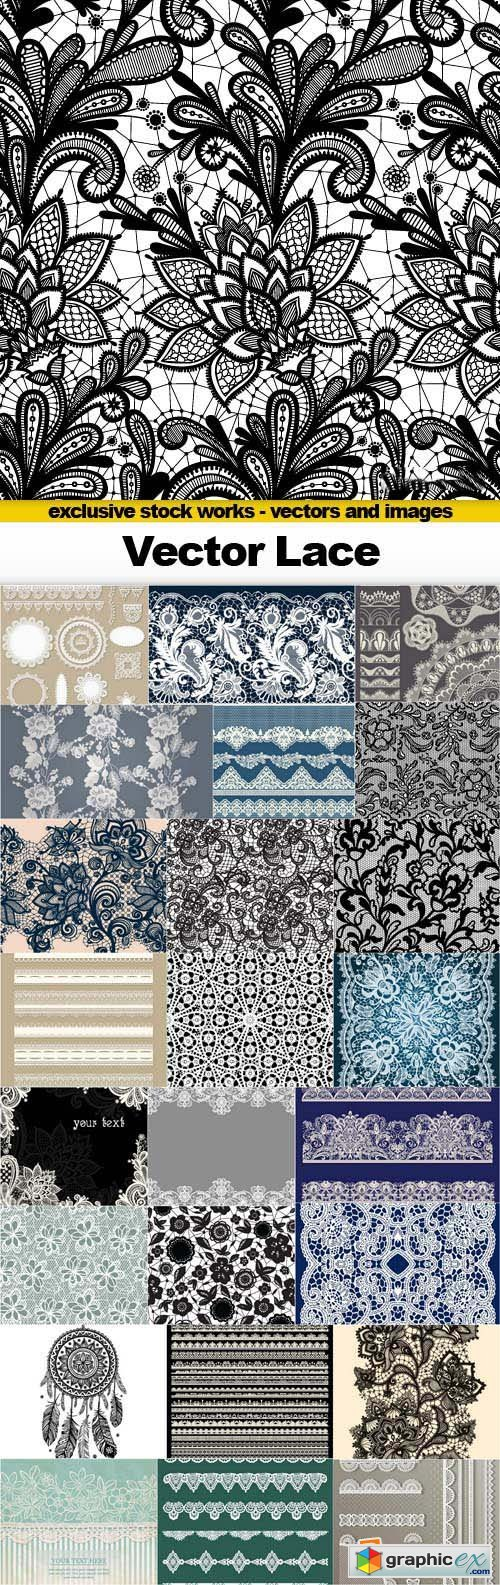 Vector Lace - 25x EPS